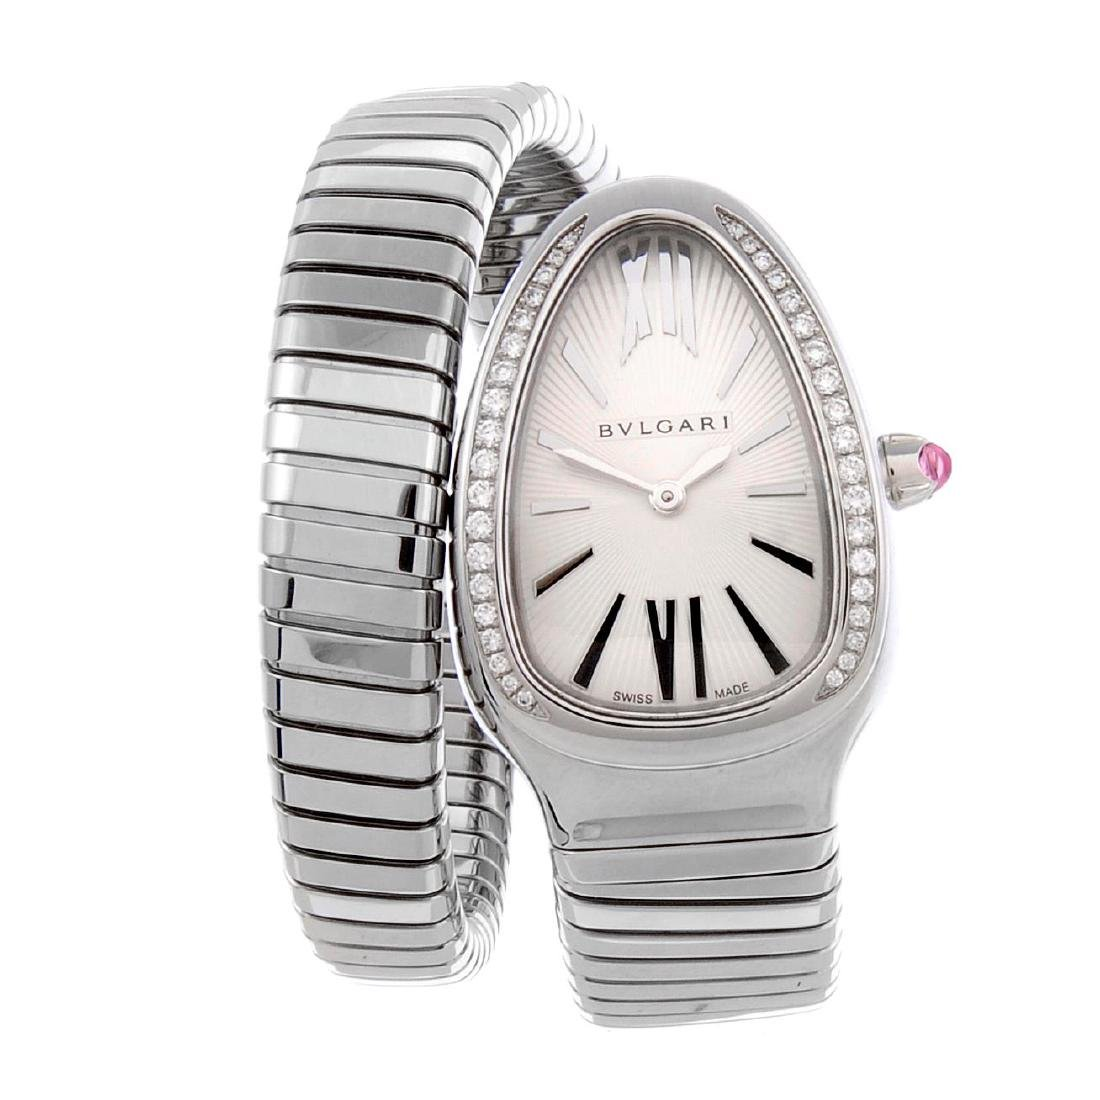 BULGARI - a lady's Serpenti Tubogas bracelet watch.